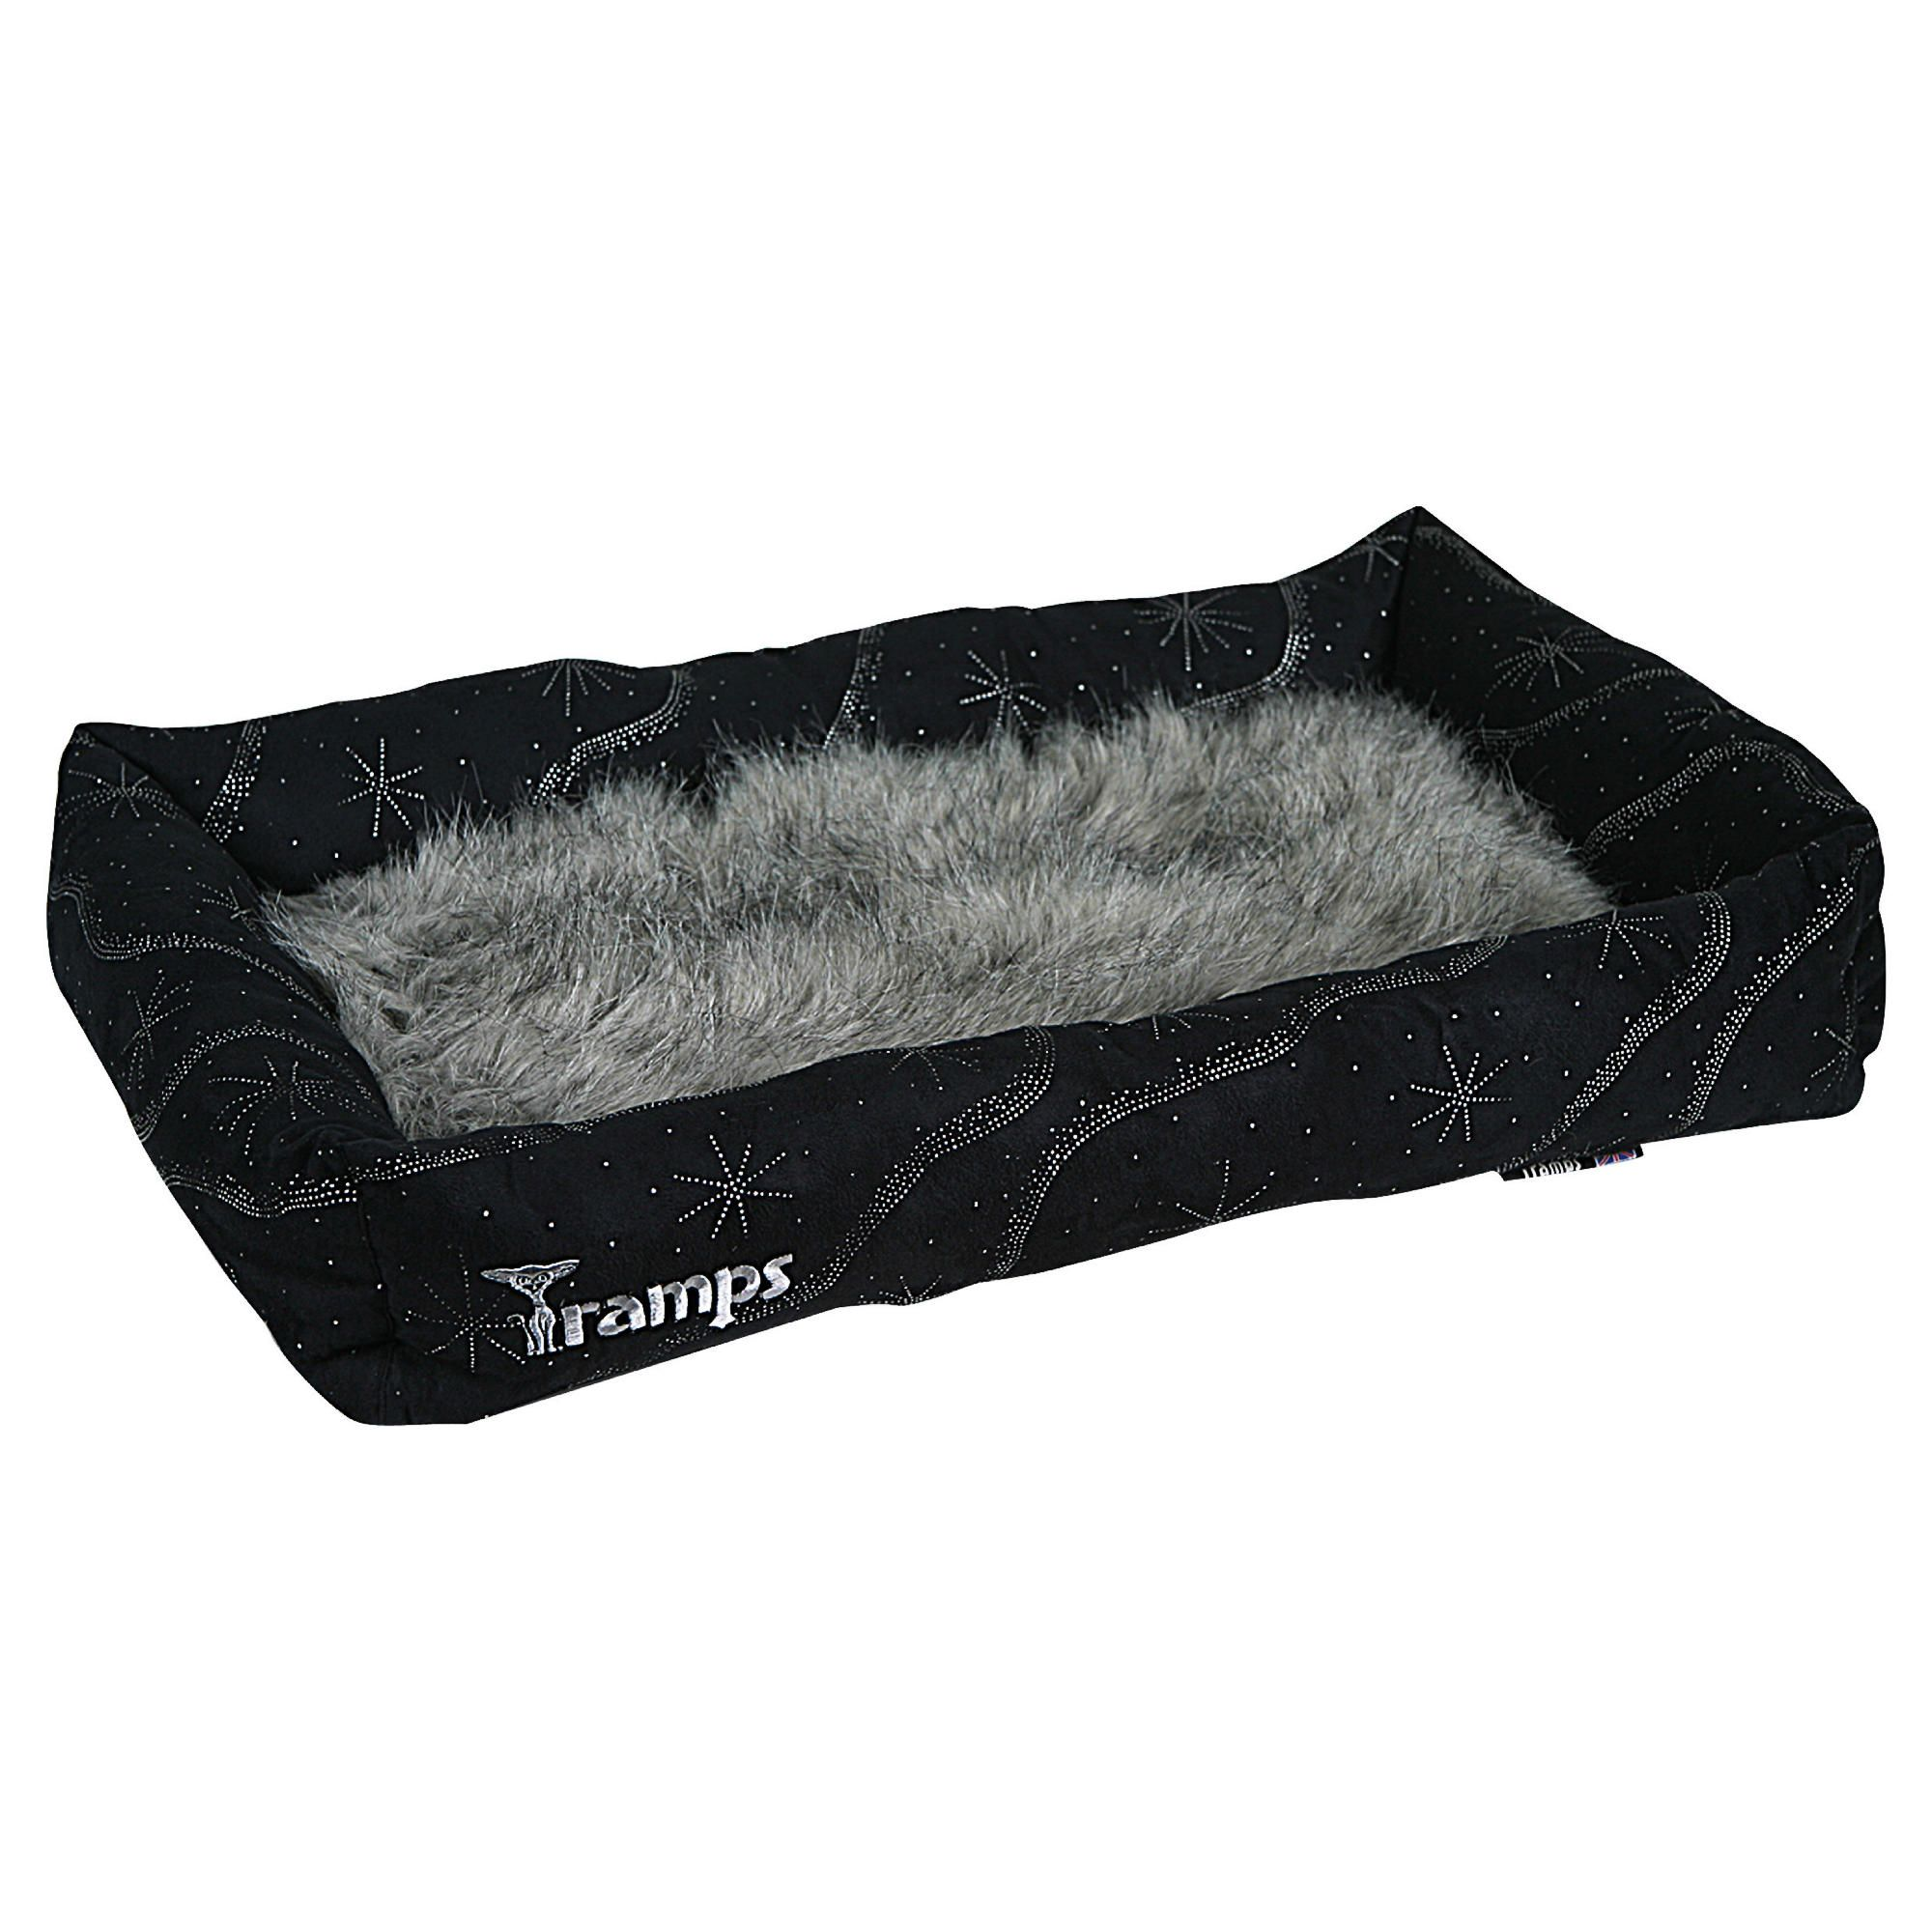 Tramps Twilight lounger, black